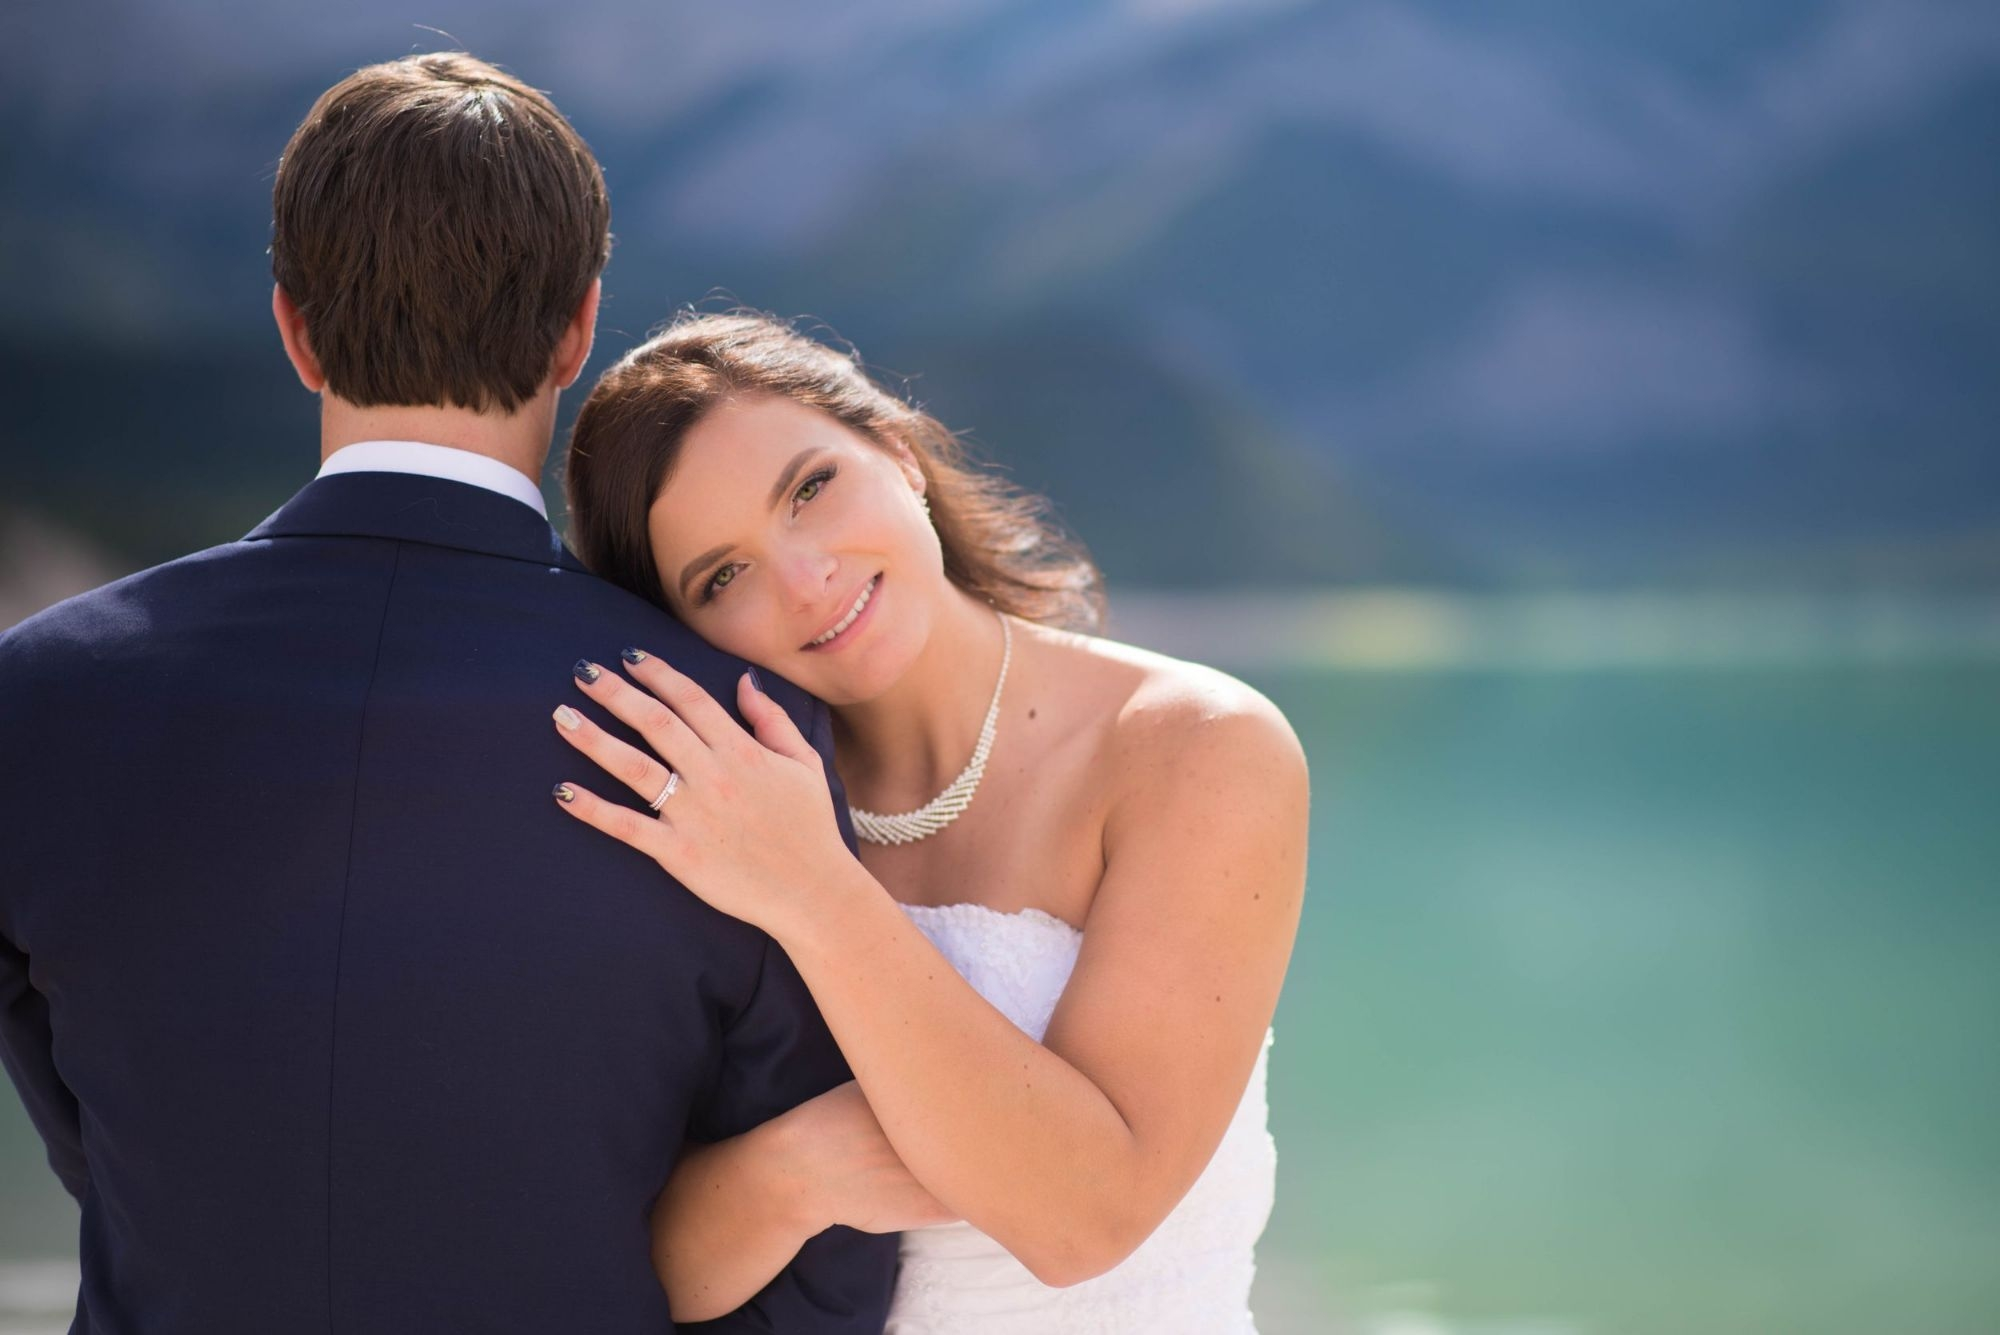 Nadine McKenney Photography's Classic Elopement Photography Photo